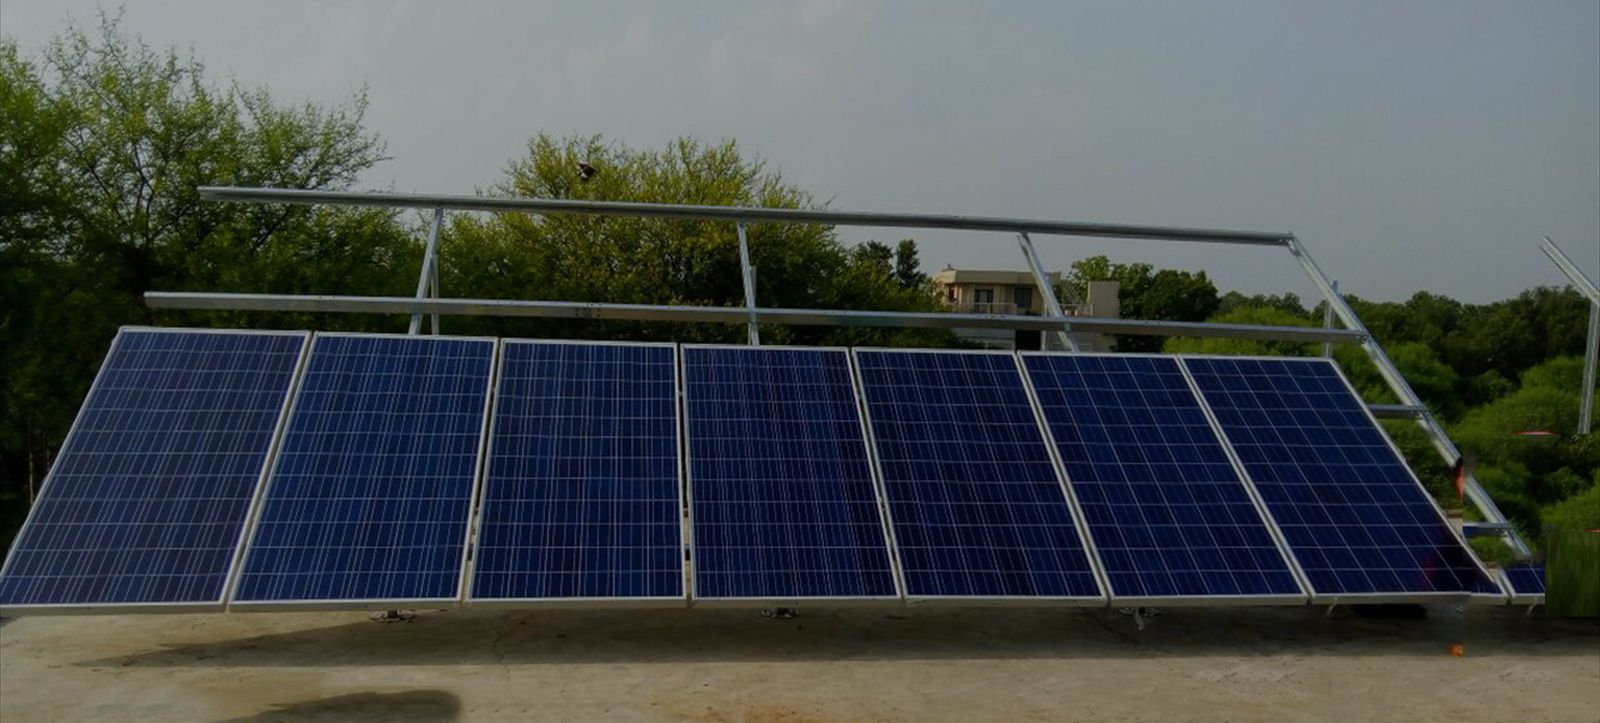 Sources Of Renewable Energy With Images Renewable Energy Solar Solar Panel Manufacturers